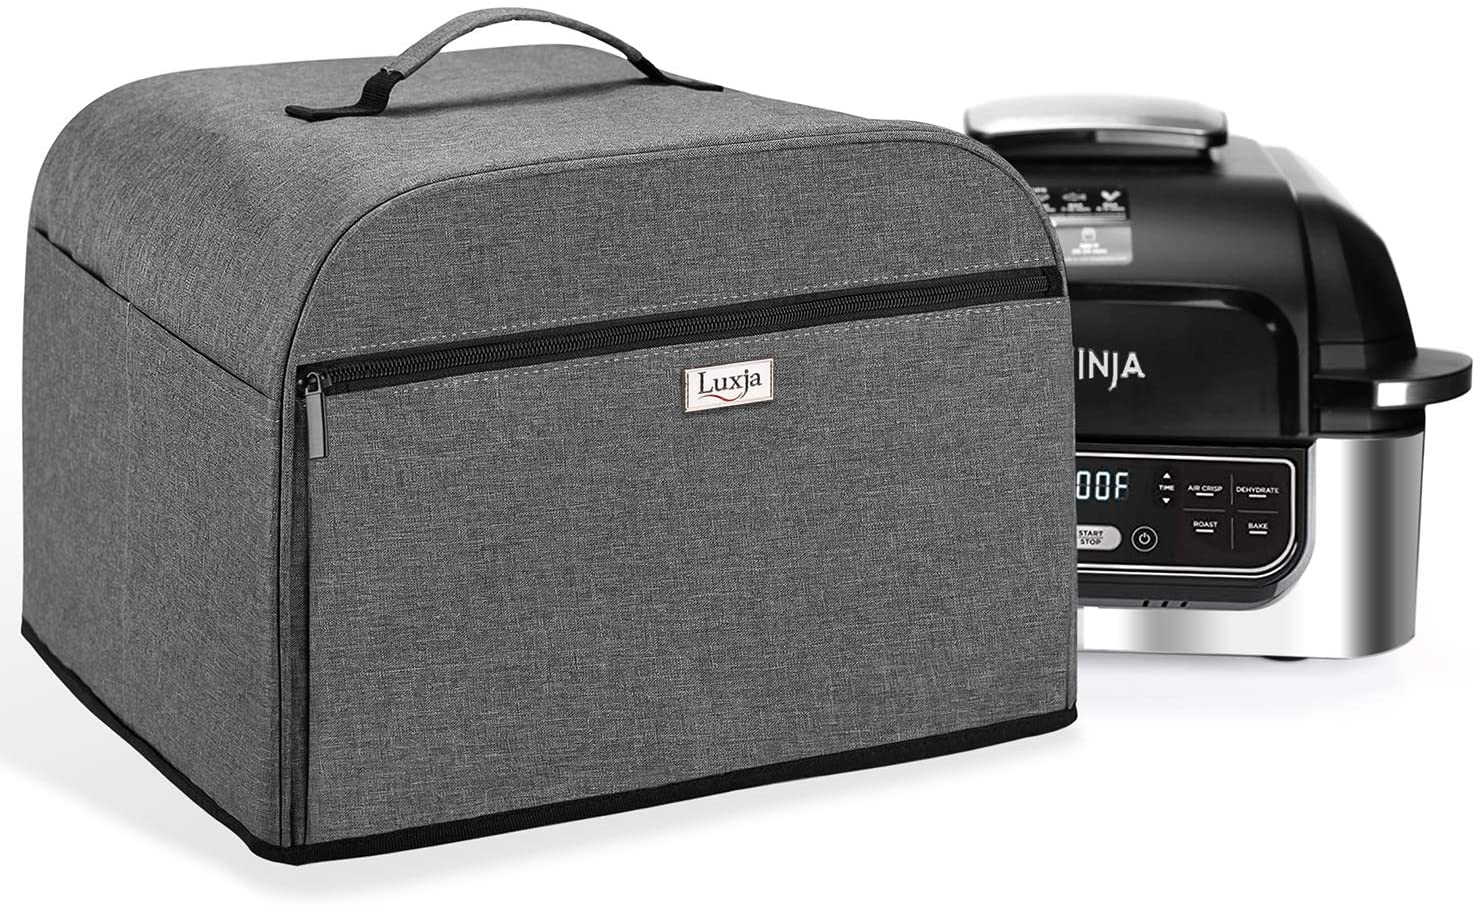 Luxja Dust Cover Compatible with Ninja Foodi Grill (AG301, AG302, AG400), Cover with Storage Pockets, Gray